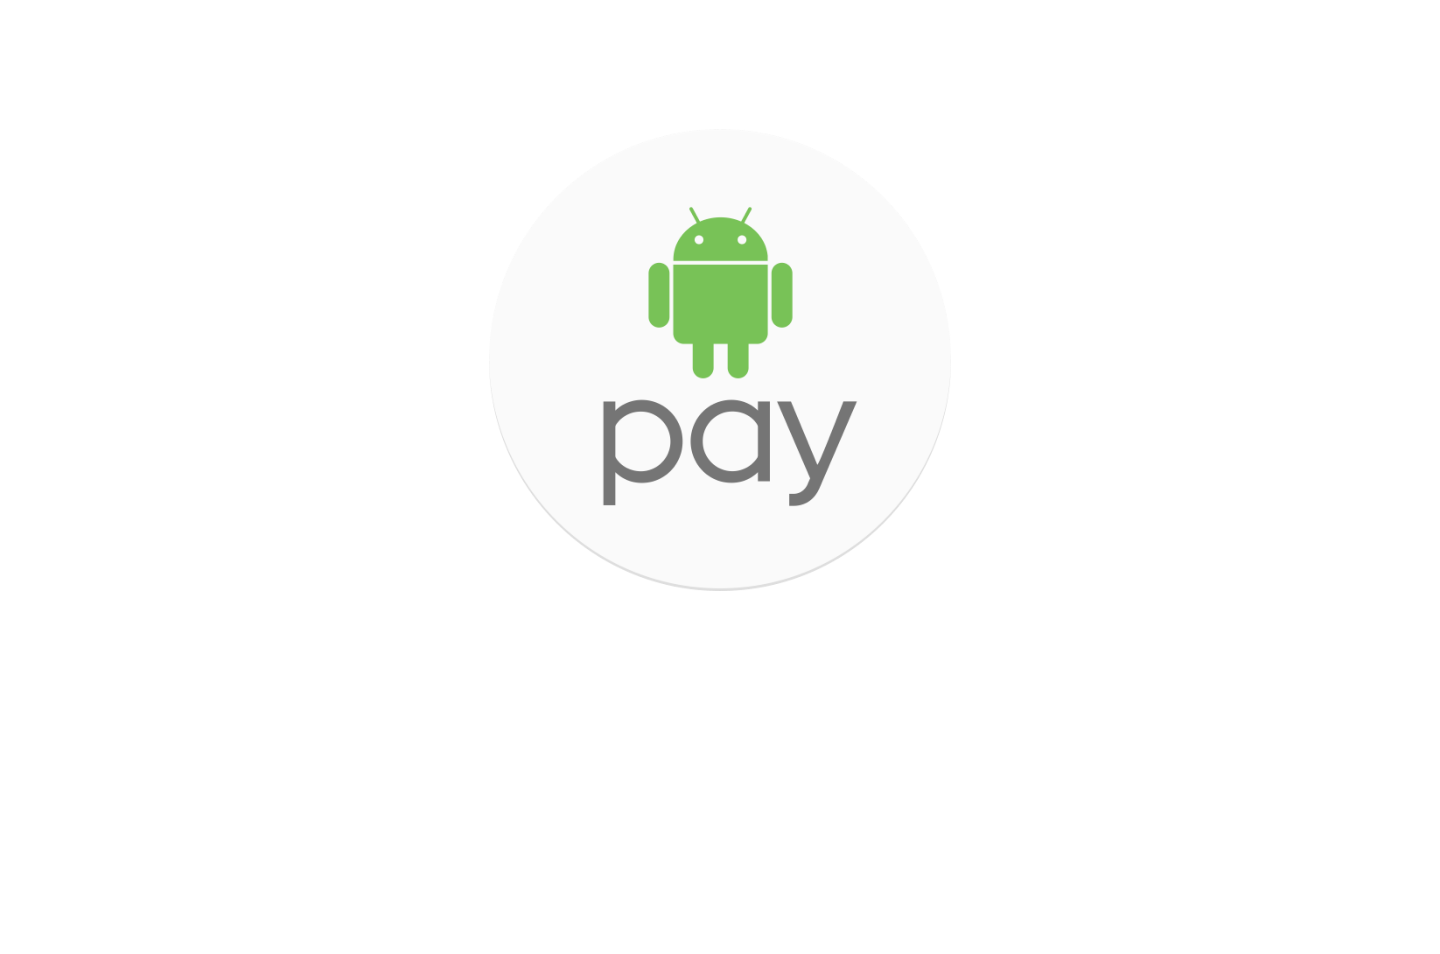 Download and install the new Android Pay app right here.